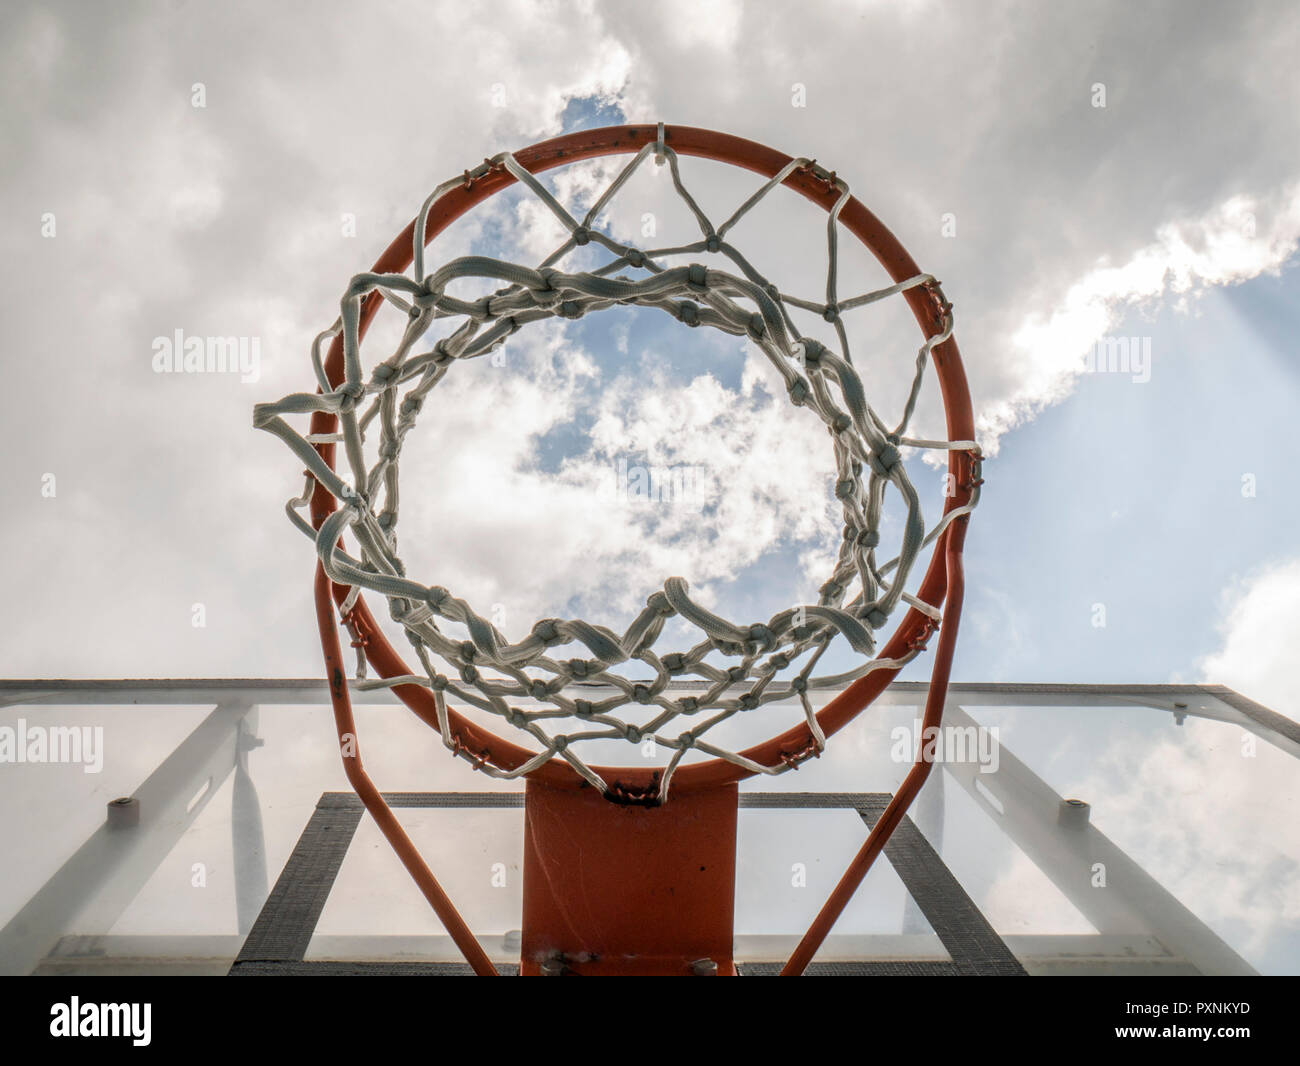 Basketball hoop against clouded sky - Stock Image